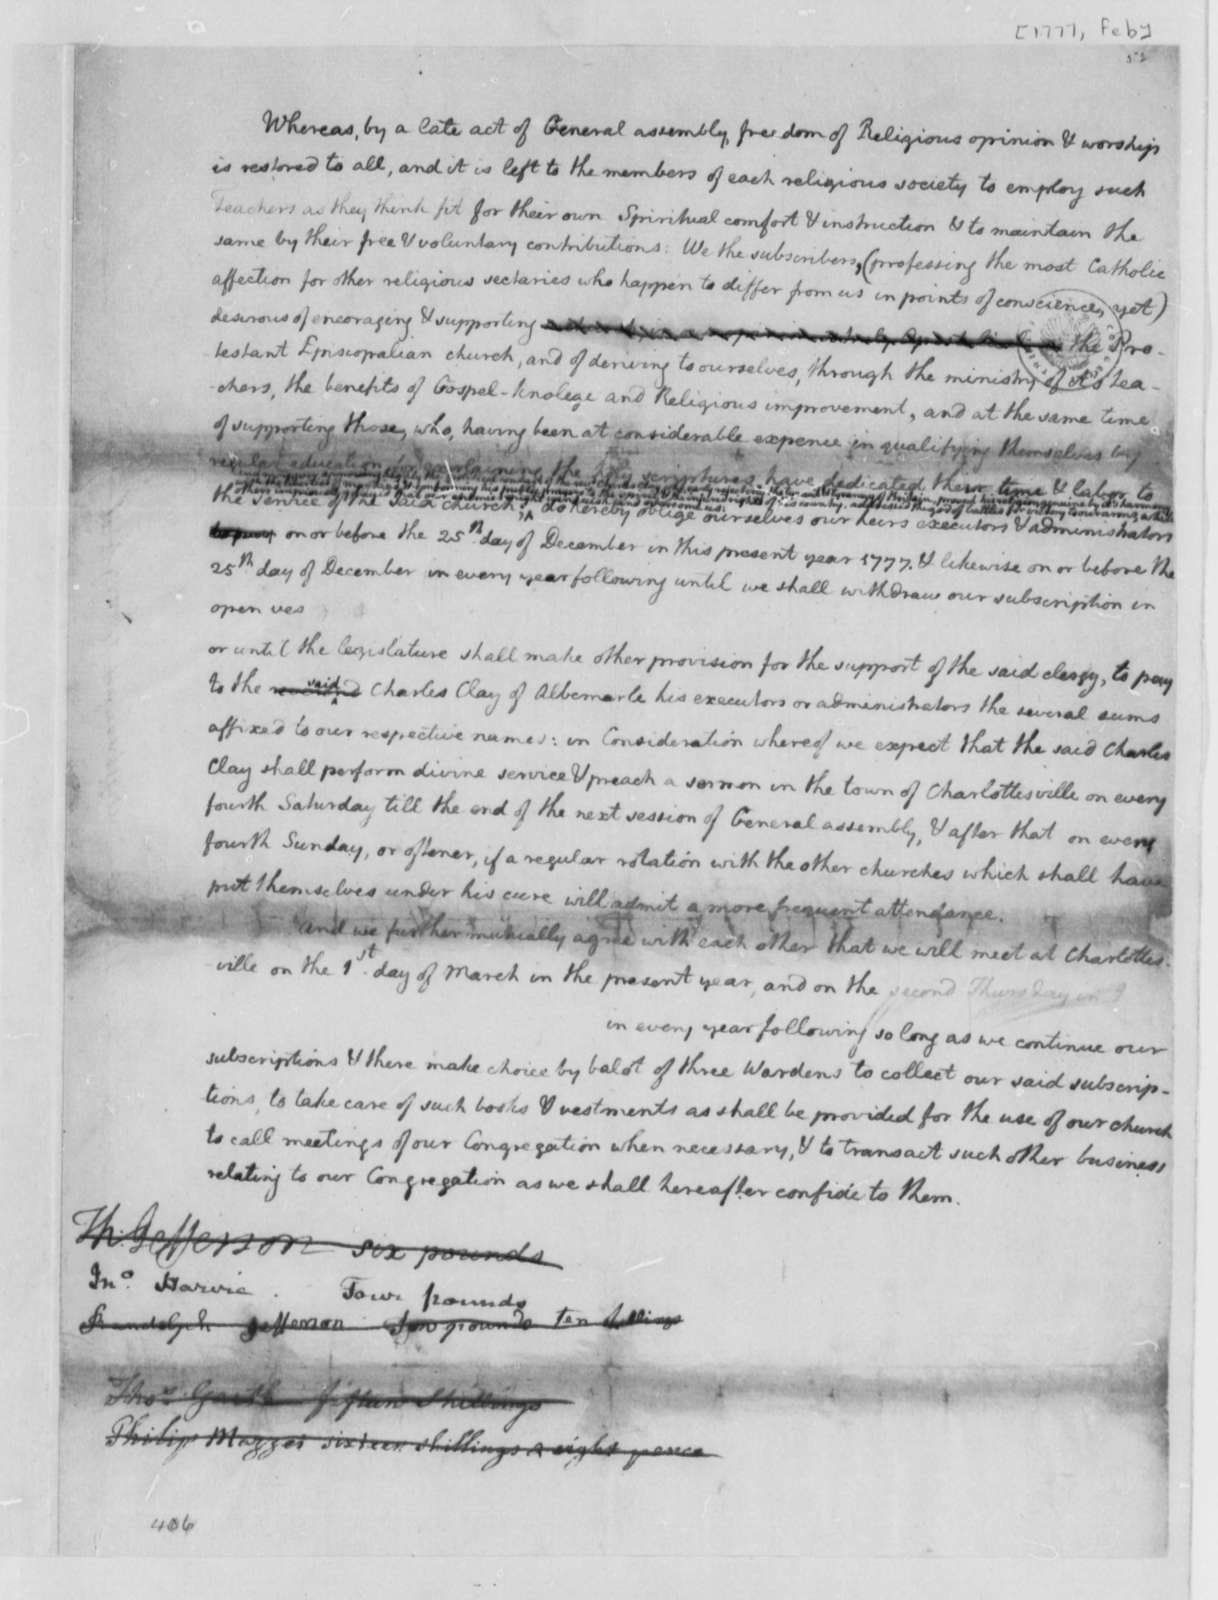 Thomas Jefferson, February 1777, Draft of Subscription to Support Charles Clay as Minister in Charlottesville, Virginia; Religious Freedom